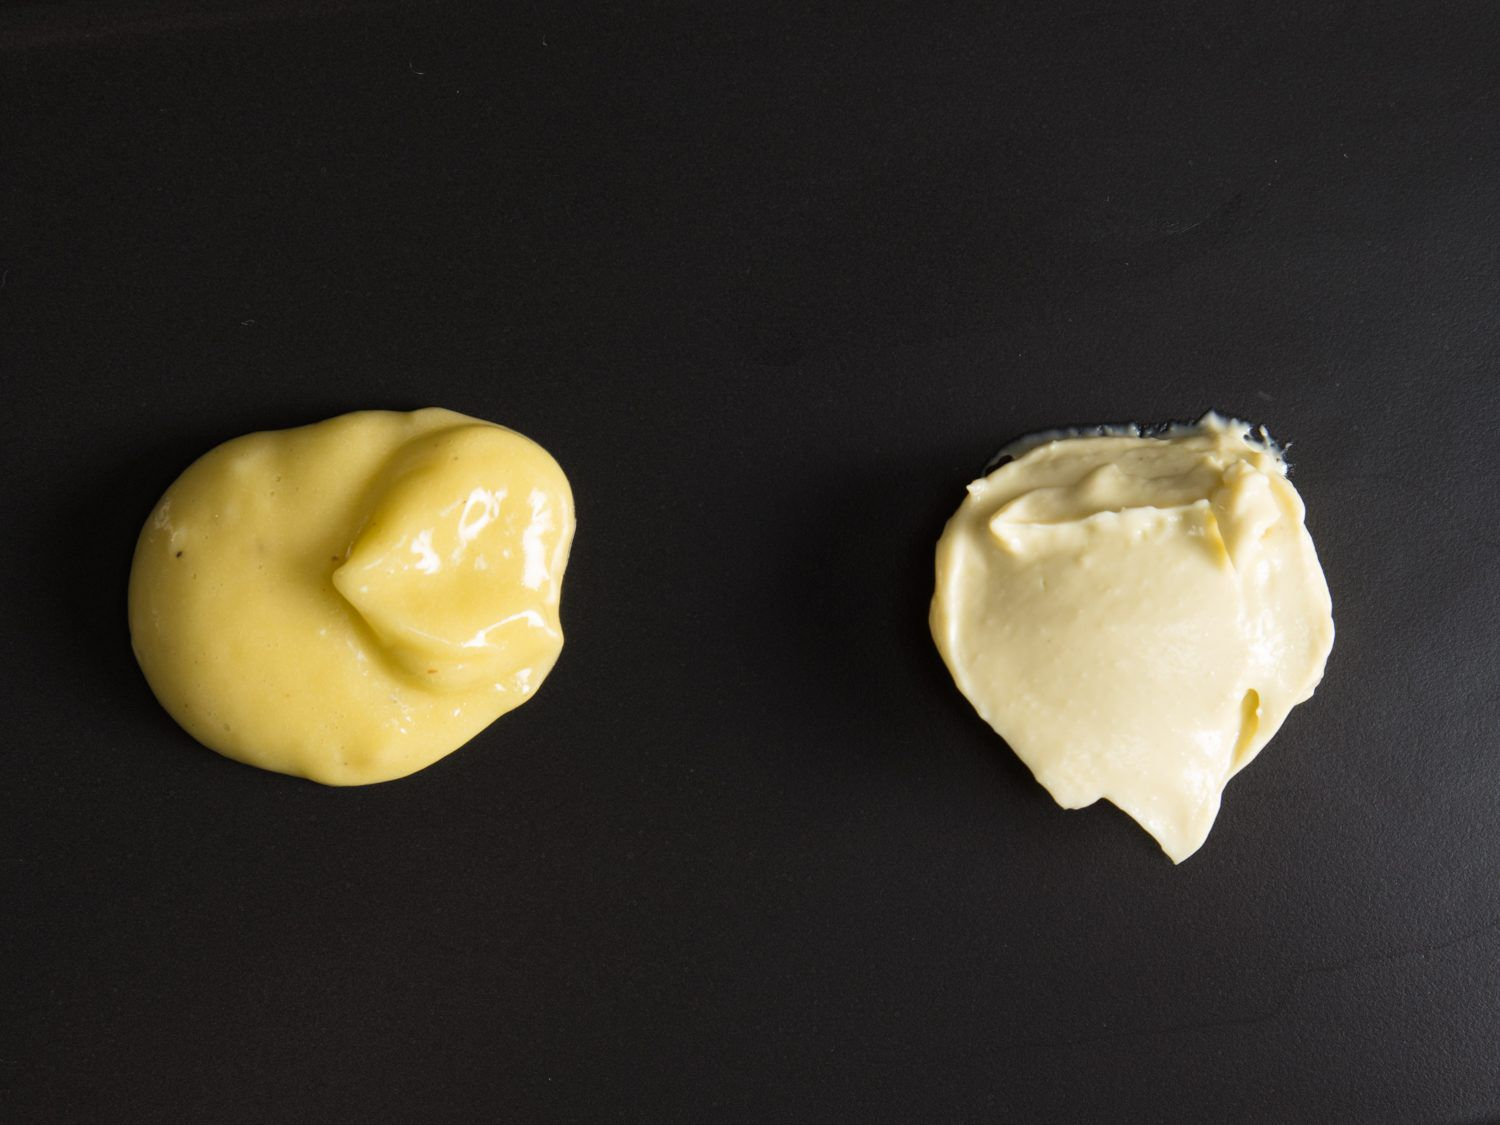 hand-whisked mayonnaise and blended mayonnaise